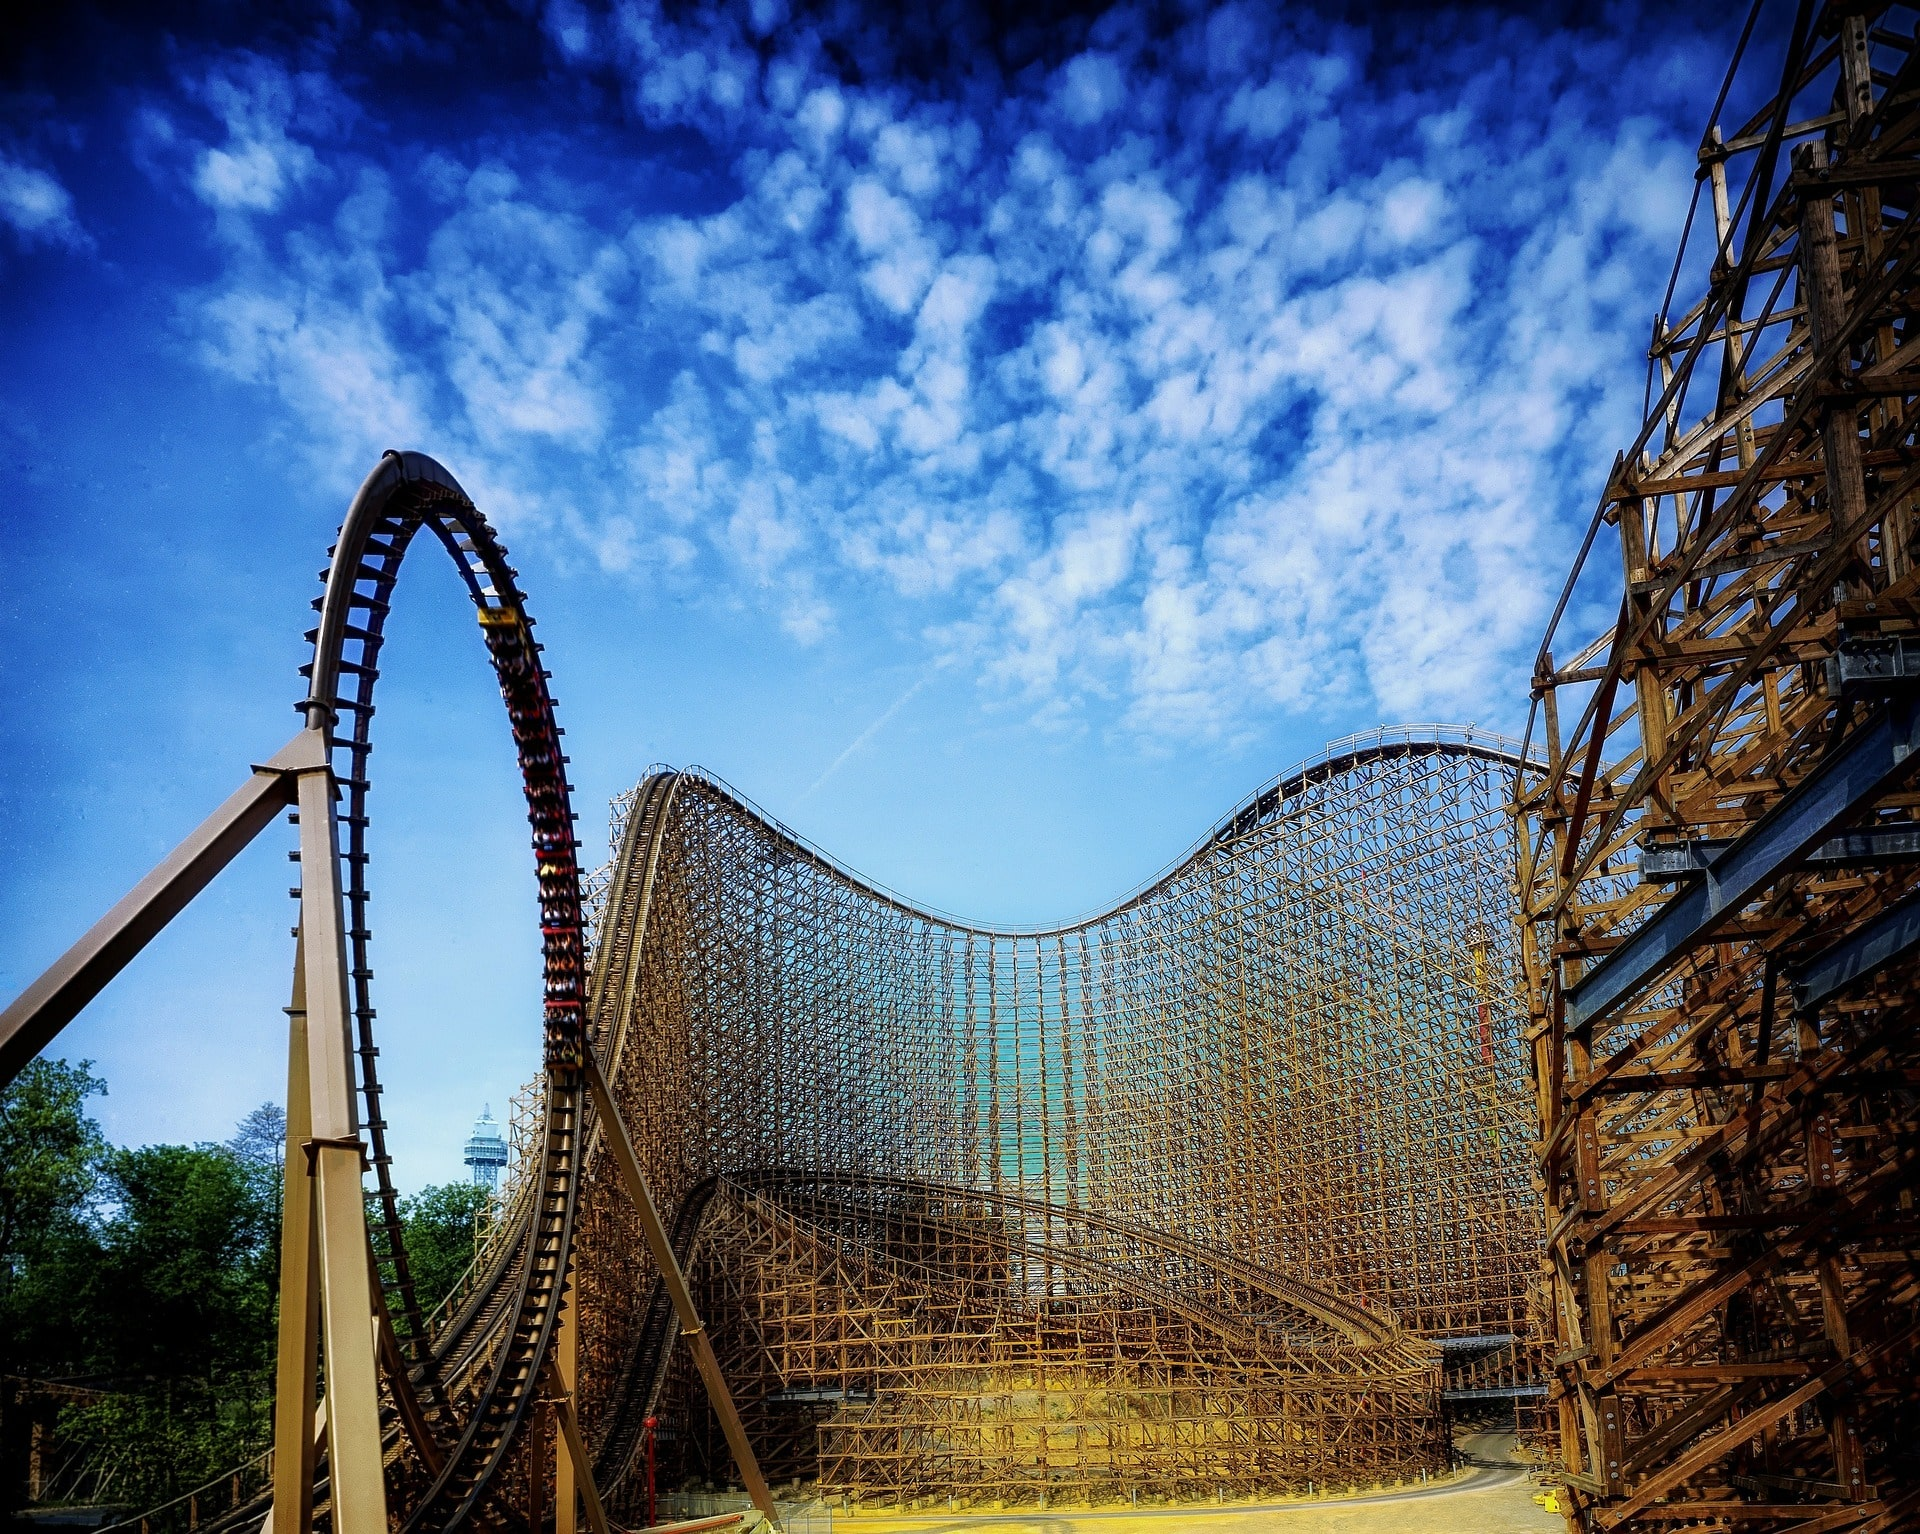 Wooden roller coaster in front of blue sky